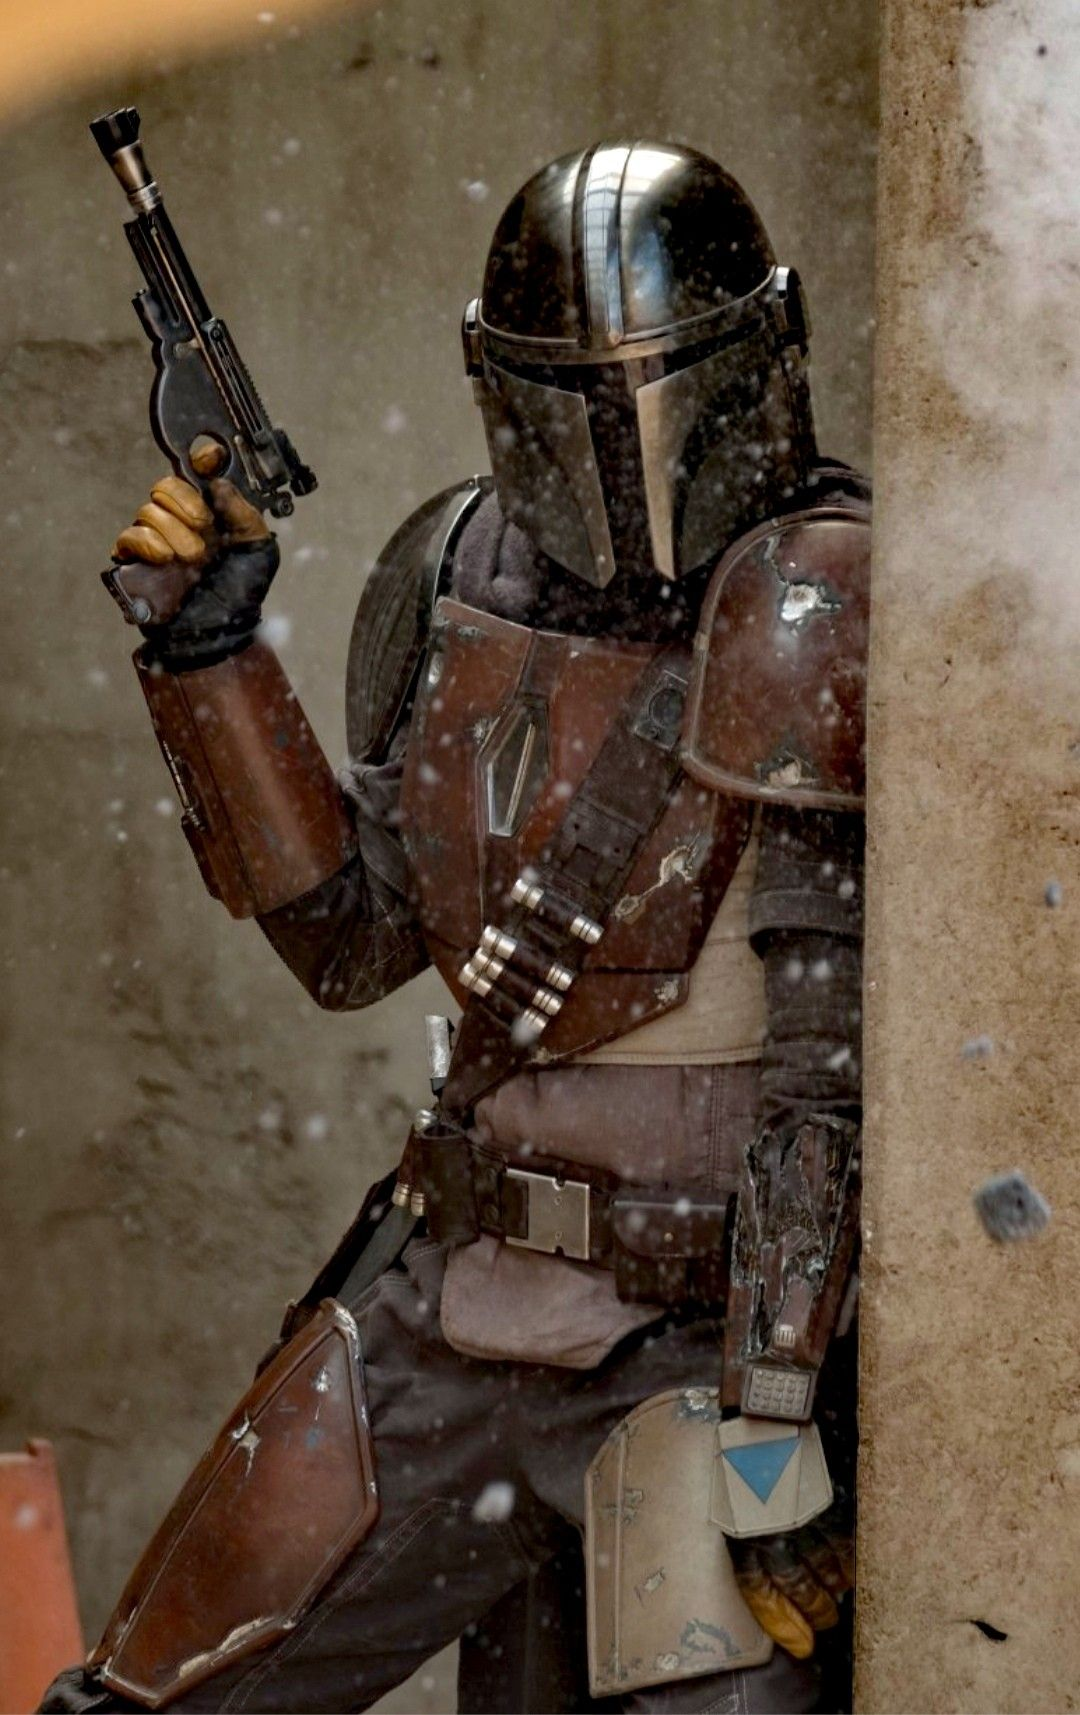 The Mandalorian Wallpaper : pin on star wars ~ Pogadajmy.info Styles, Décorations et Voitures